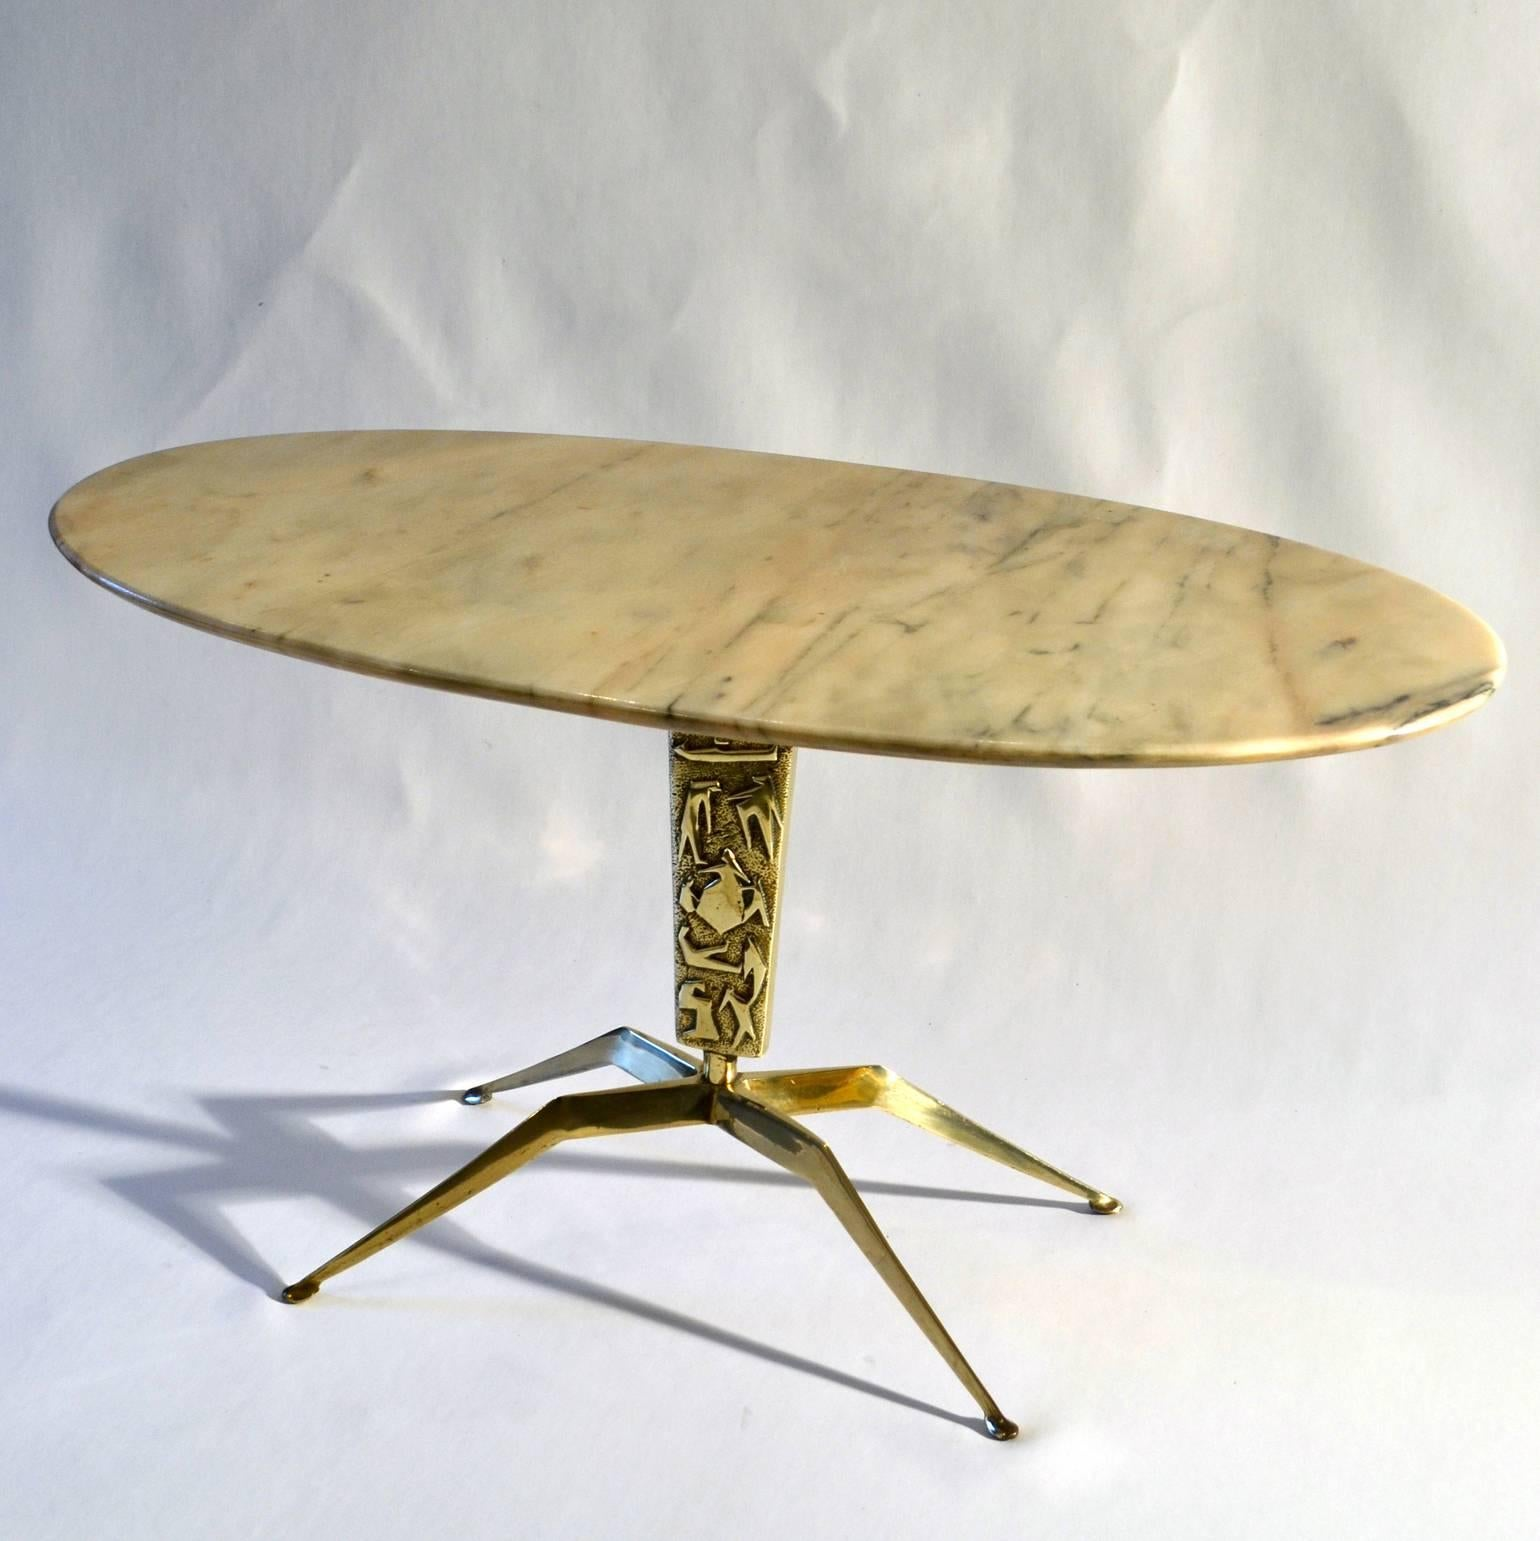 1950s Italian Oval Marble Coffee Table On Sculptural Brass Base For Sale 2